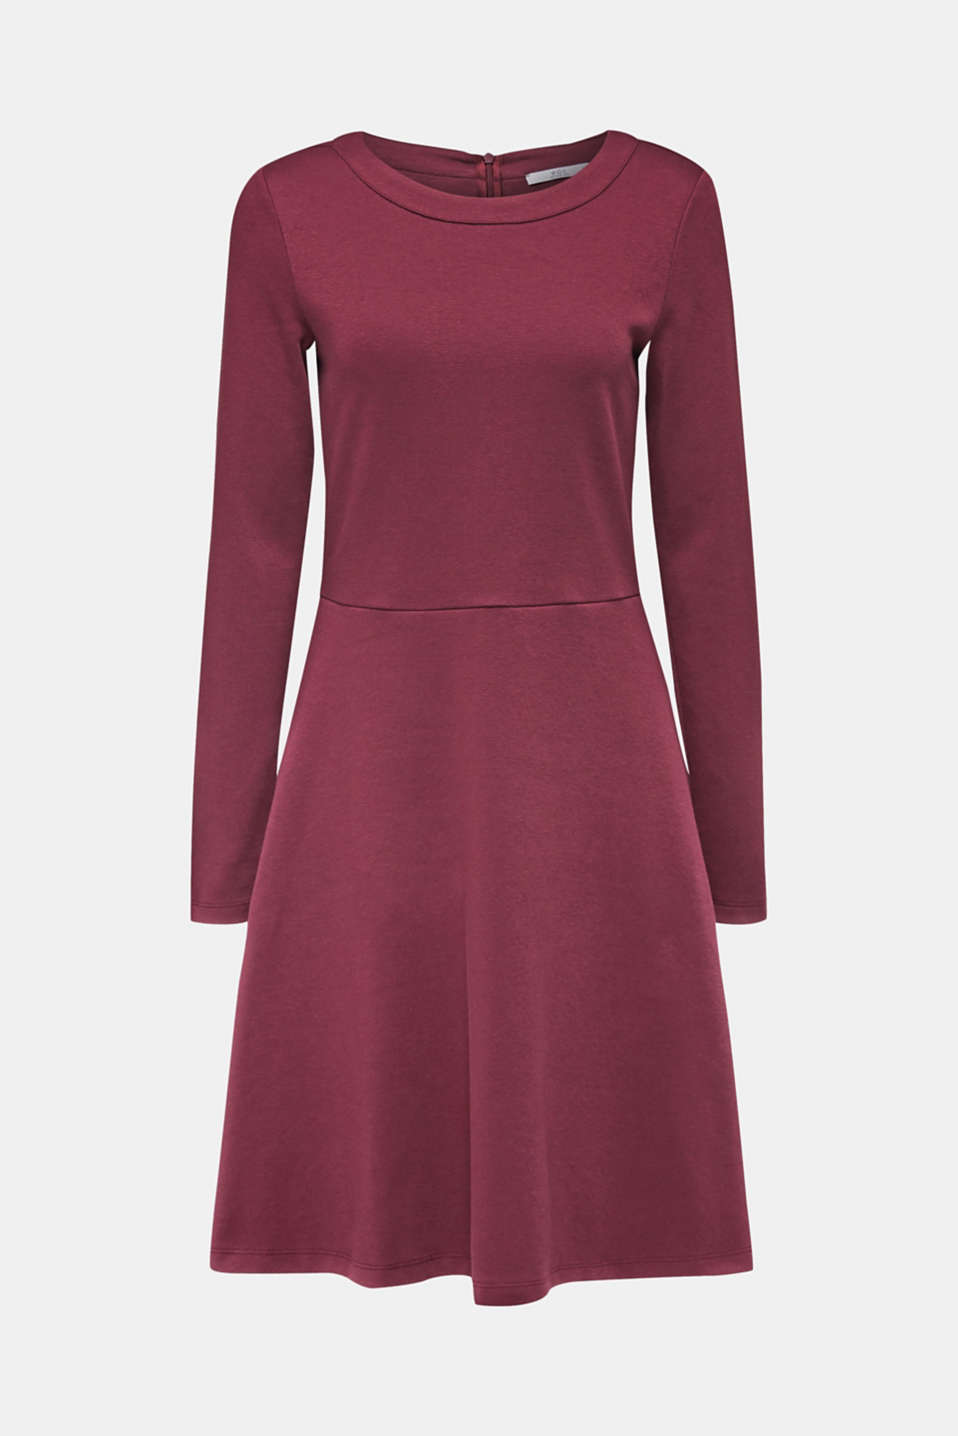 Dresses knitted, BORDEAUX RED, detail image number 6